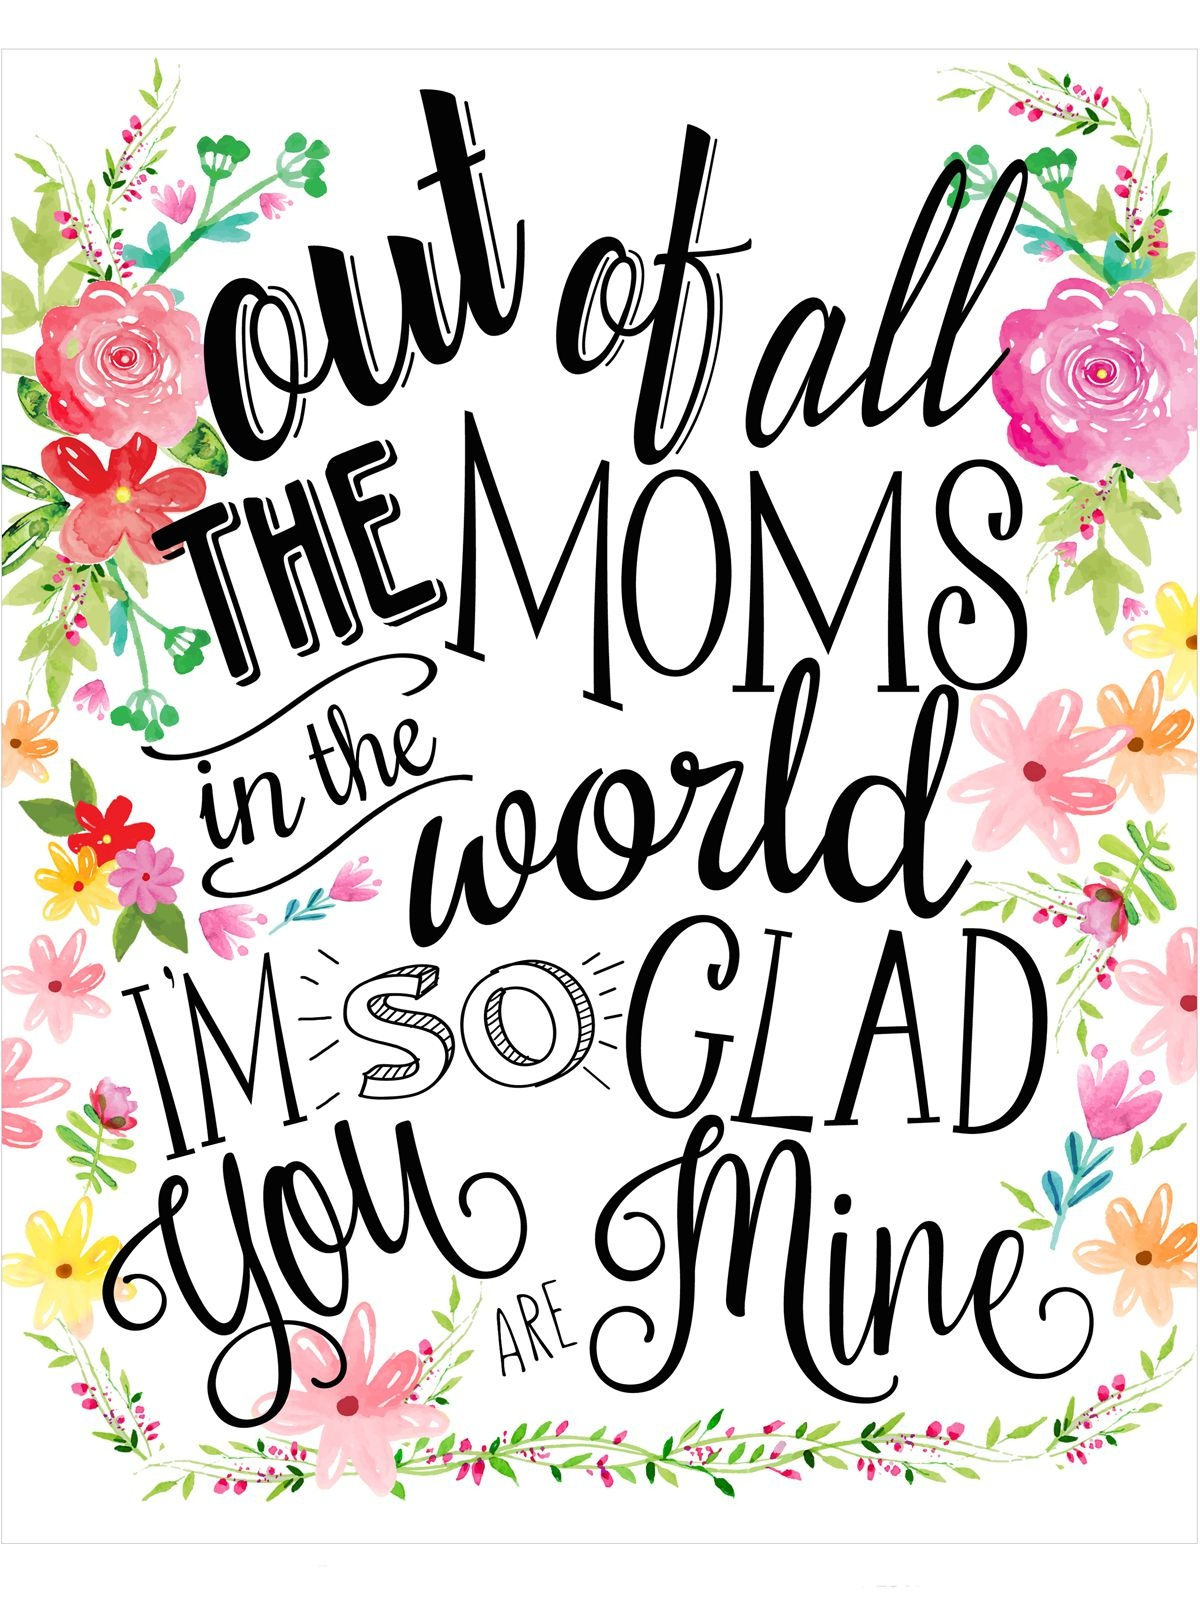 23 Mothers Day Cards - Free Printable Mother's Day Cards - Free Printable Mothers Day Cards No Download